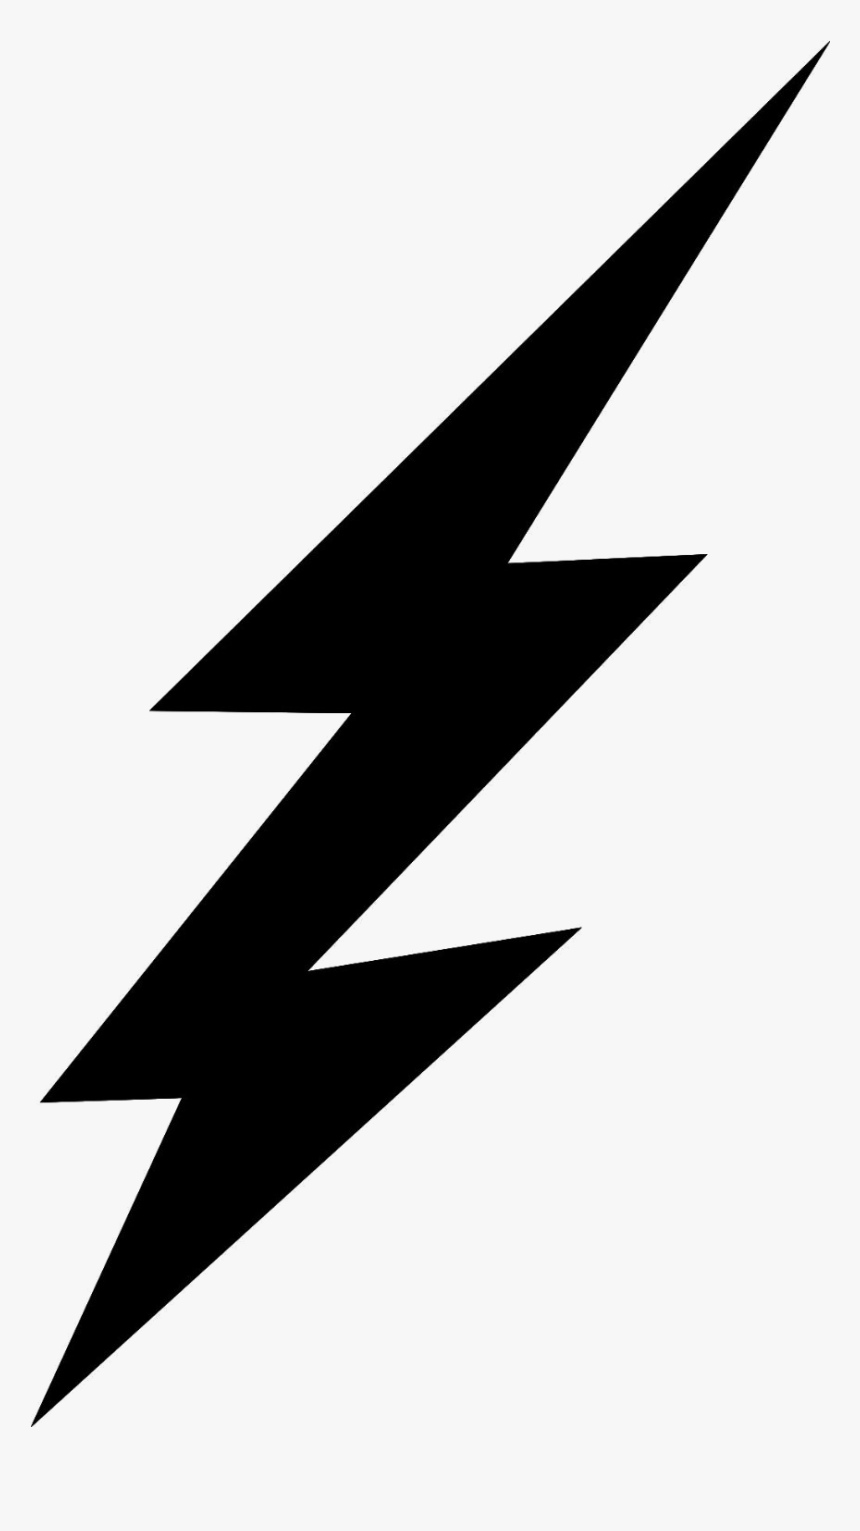 Lightning Free Bolt Clip Art On Transparent Png.